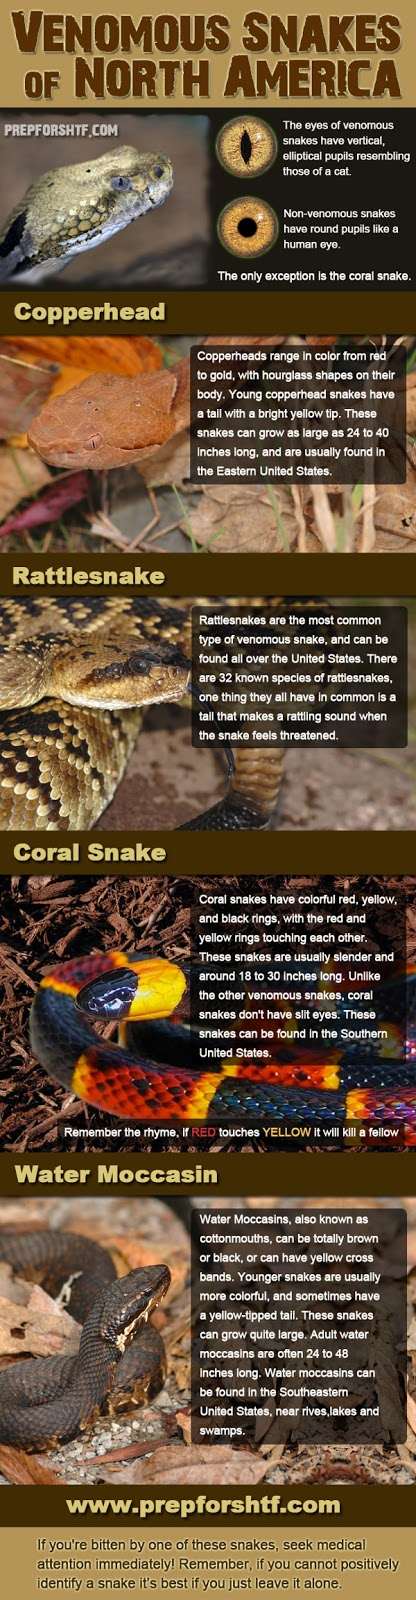 Pissed Off Venomous Snakes of North America!